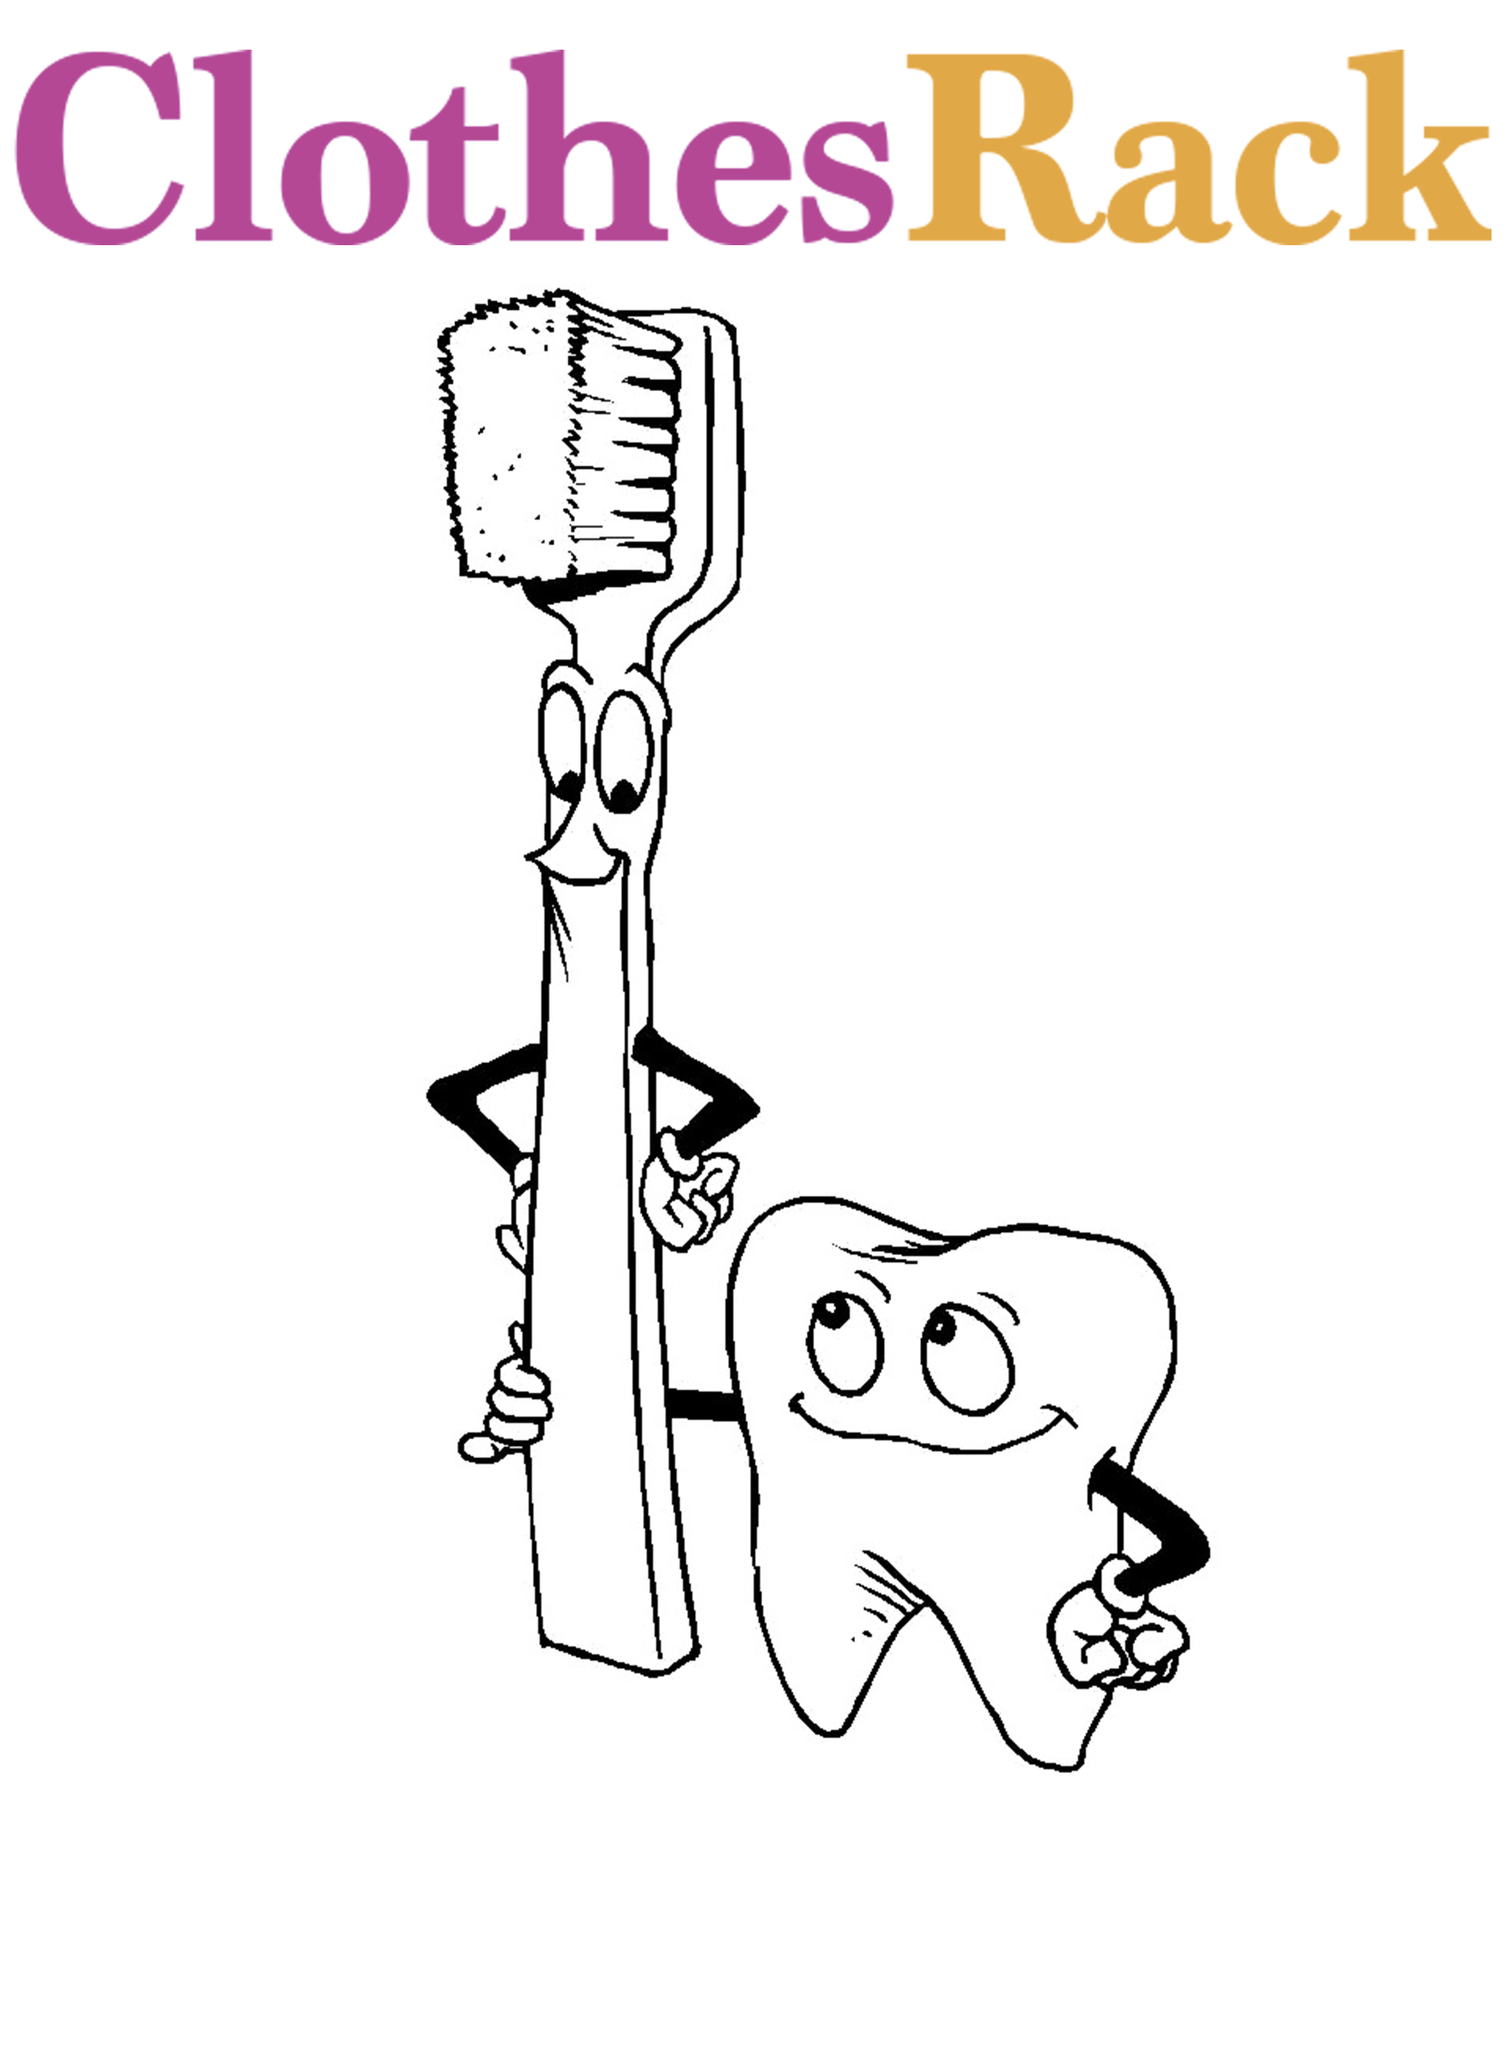 Dentist Pictures For Kids | Dental Colouring Pages For Kids | Dental Health Colouring Pages